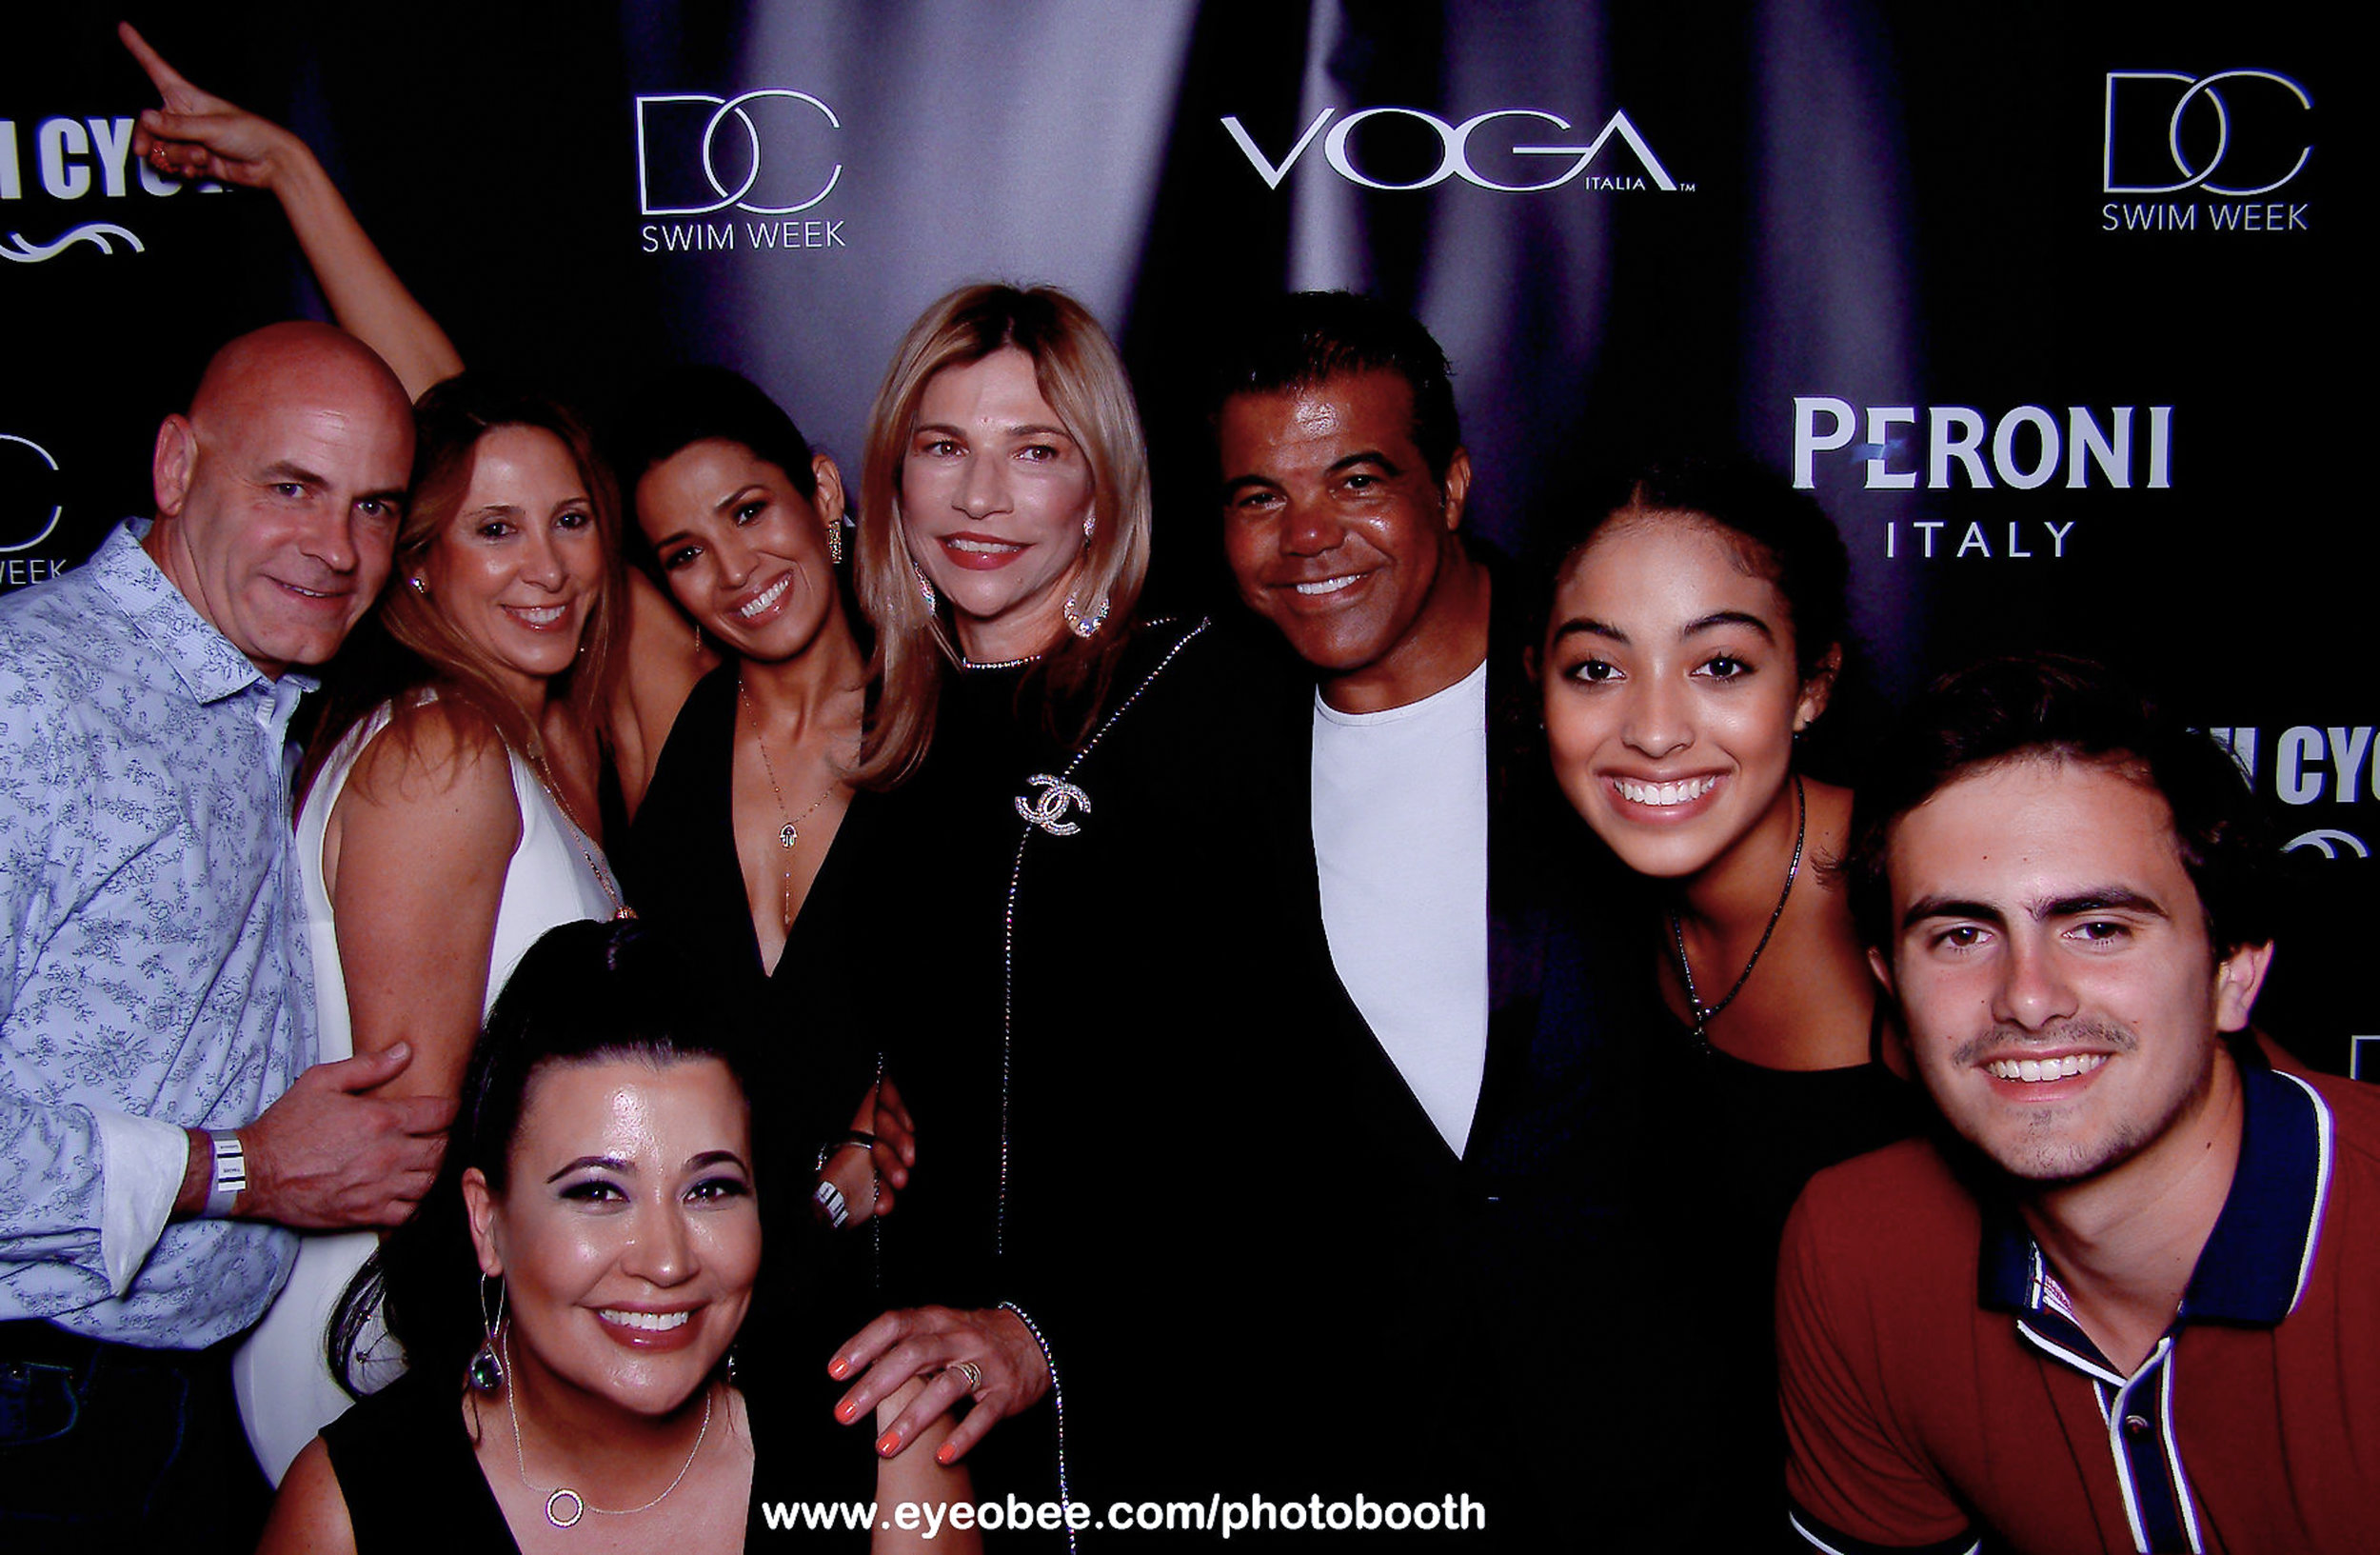 eyeobee PhotoBooth - DCSW-325.jpg